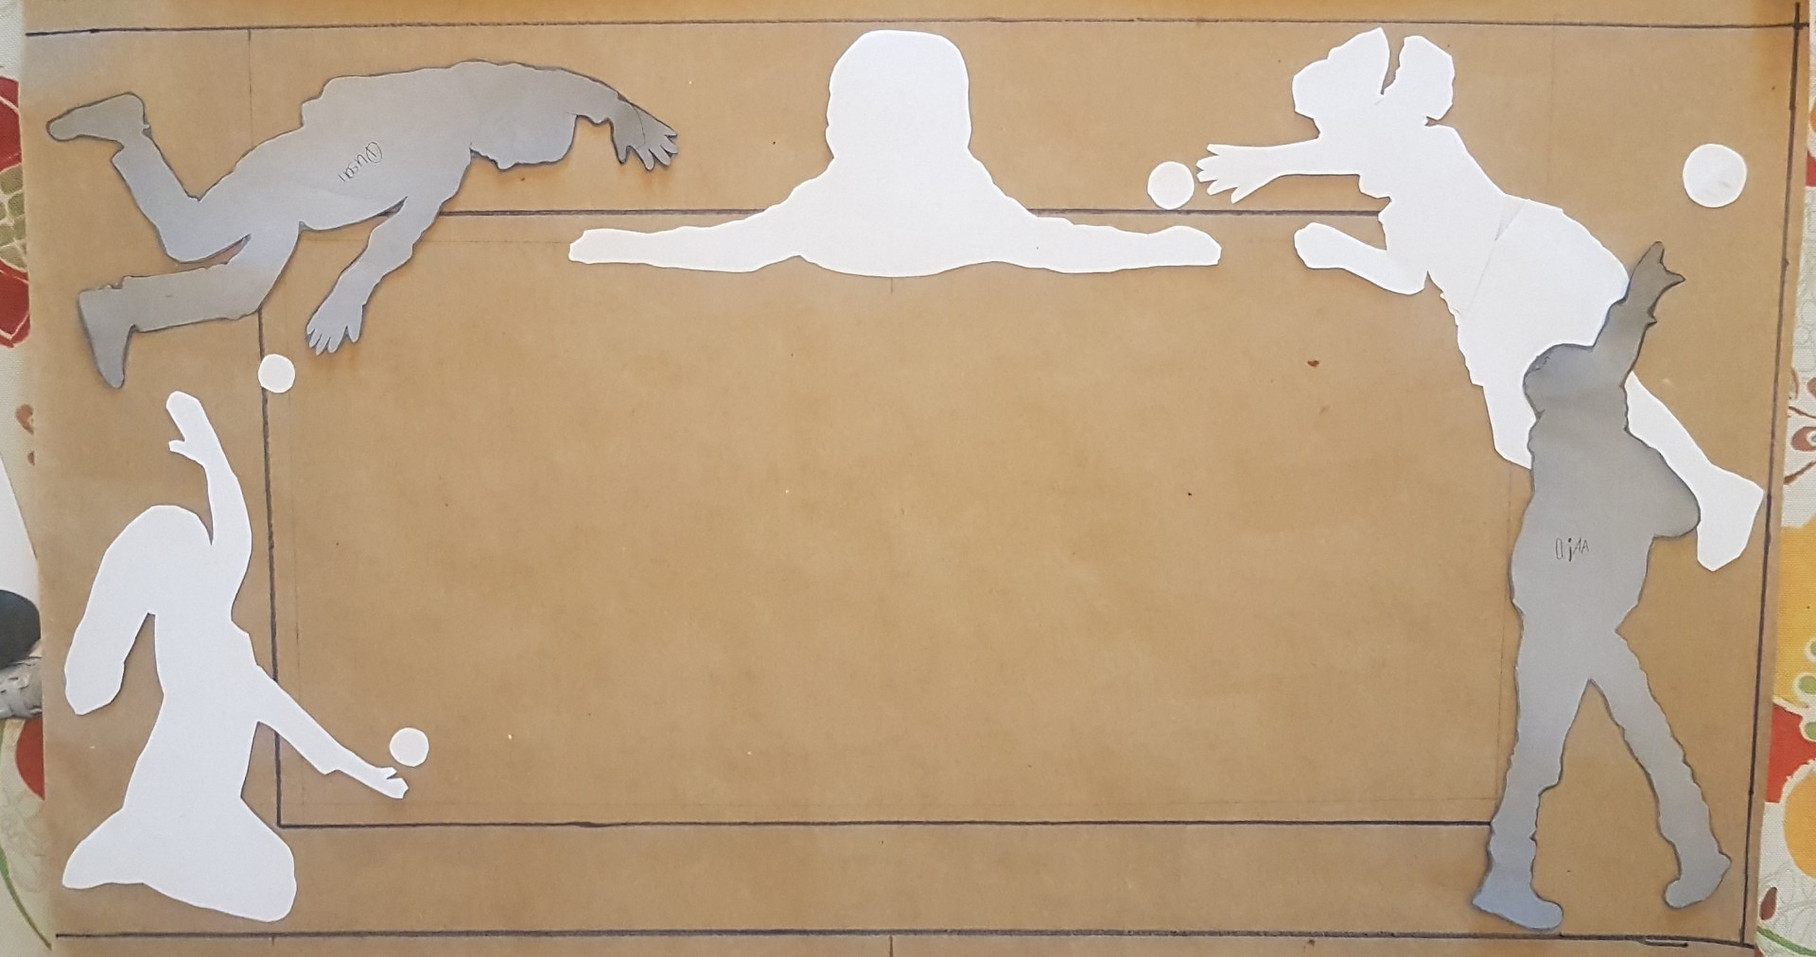 Plan for Layout of Figures.jpg